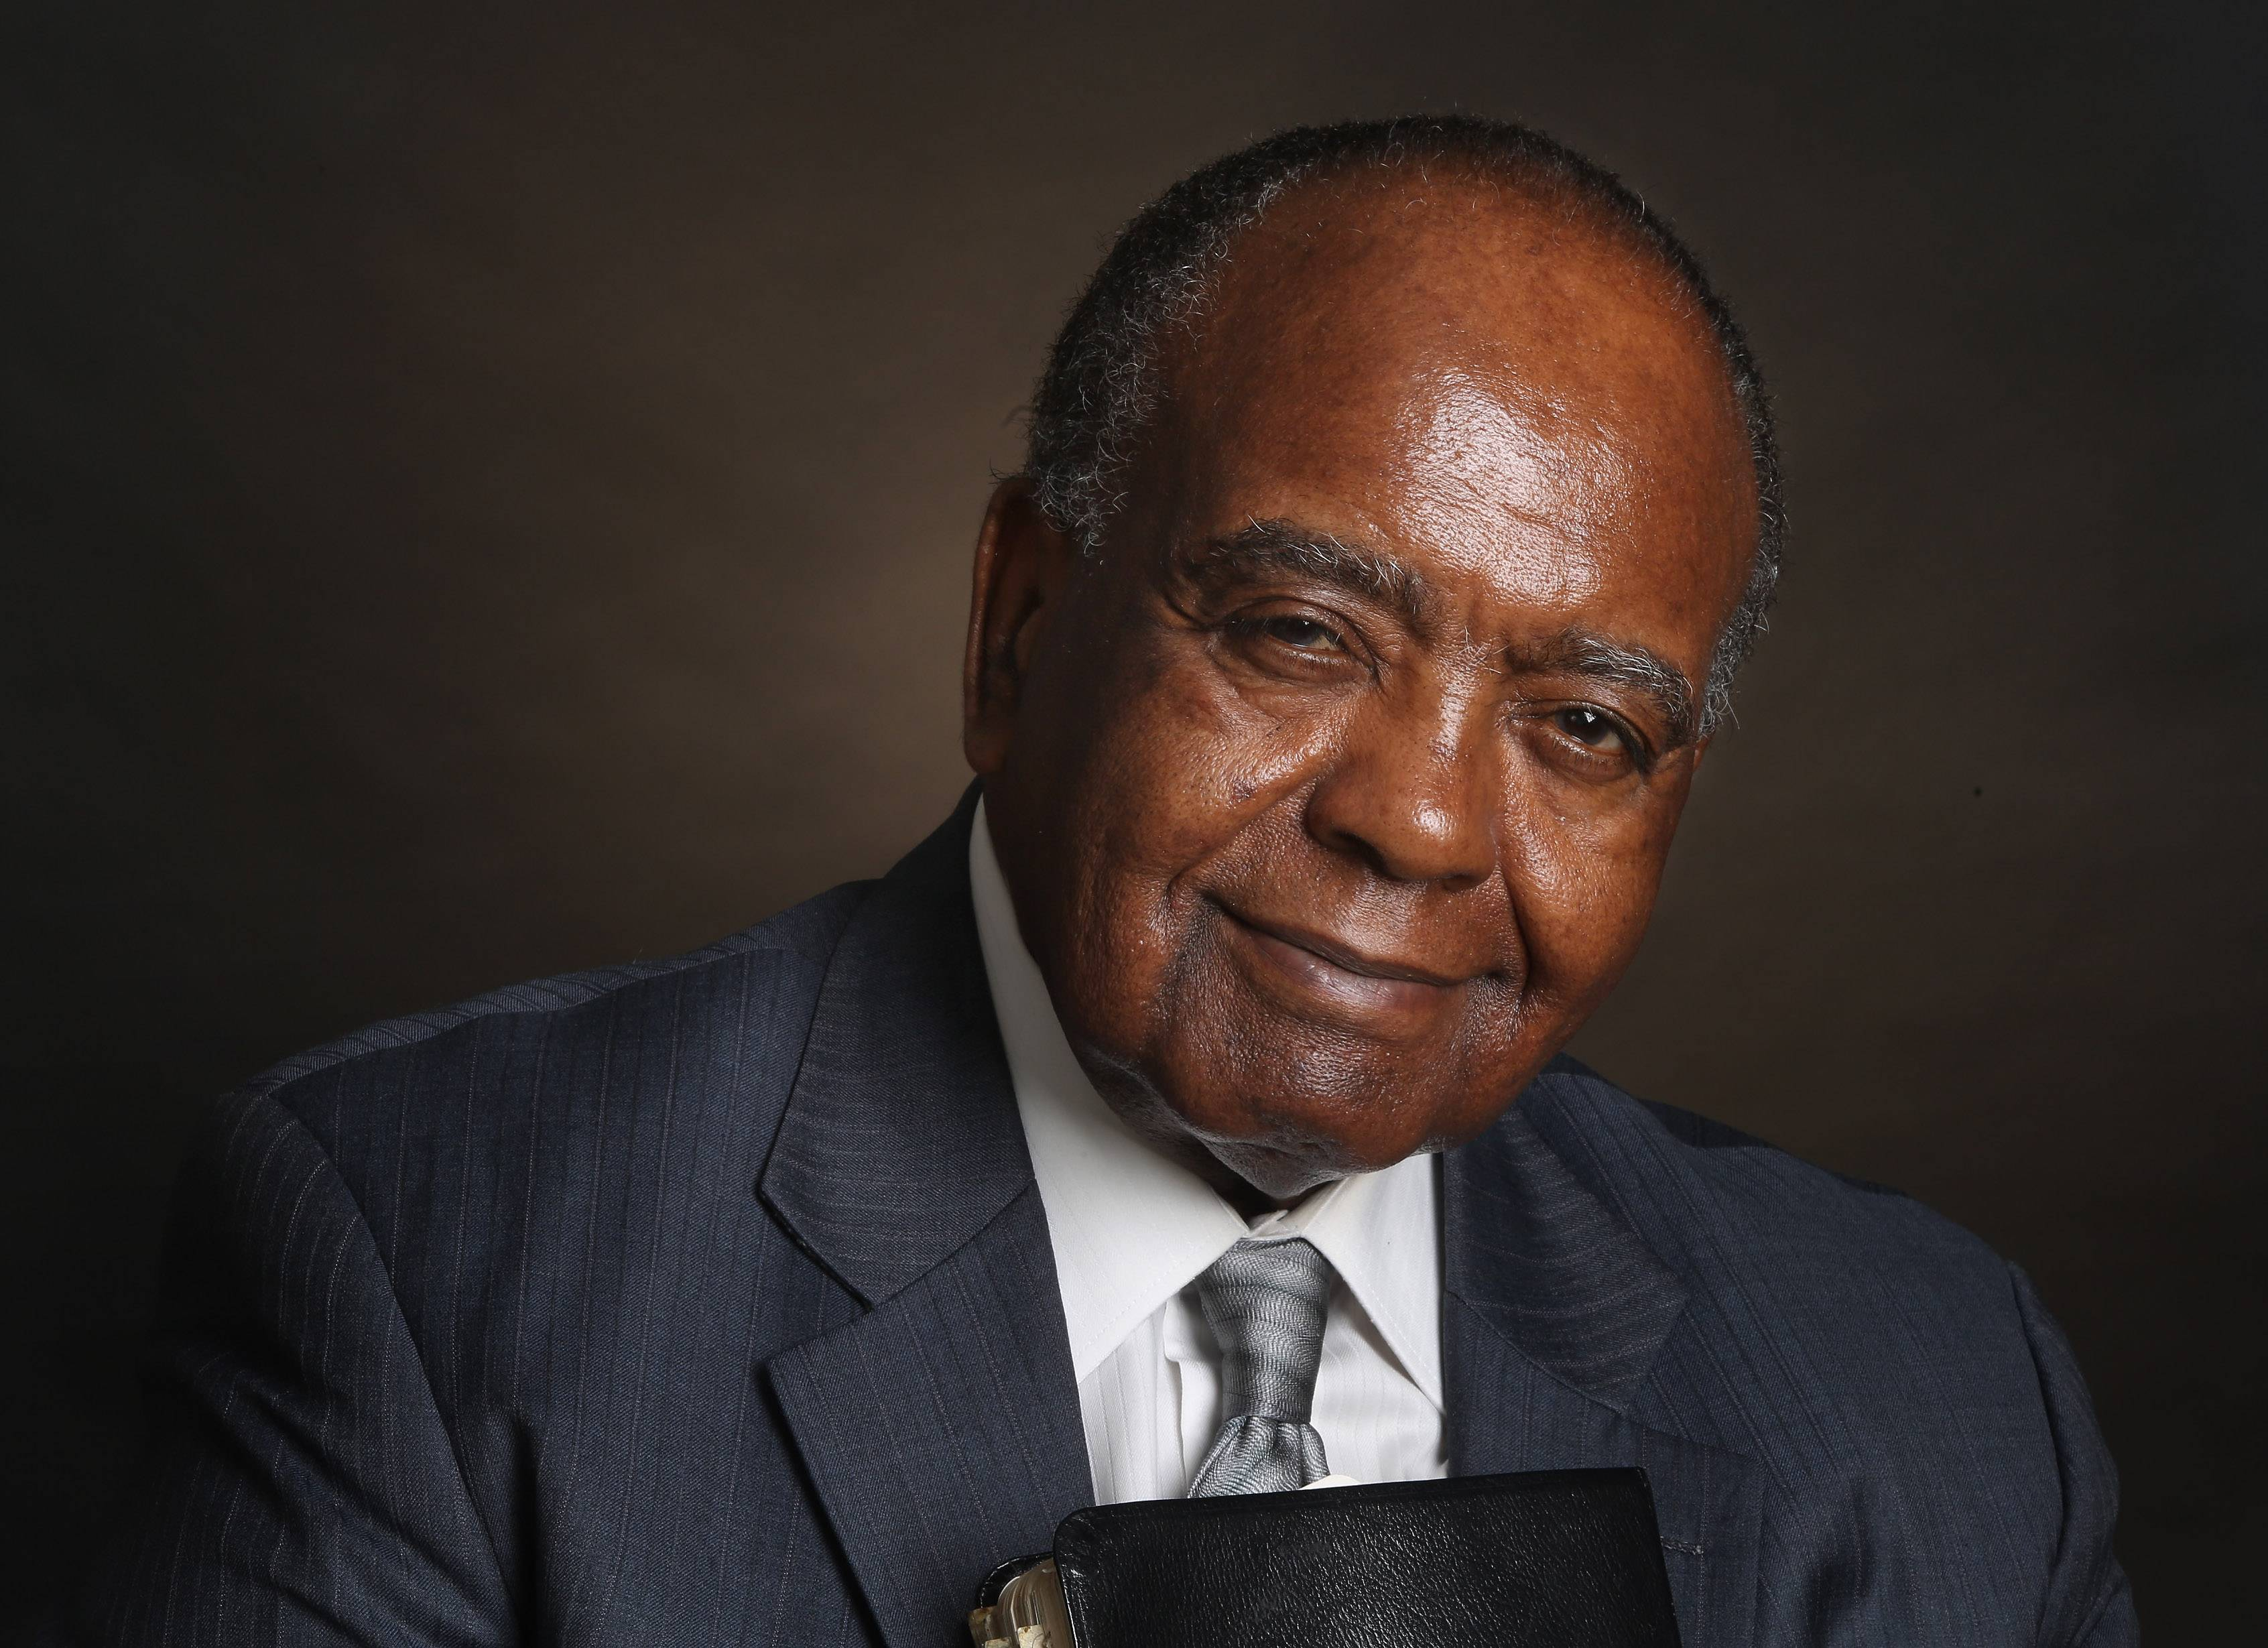 The Rev. Clyde Brooks, chairman of the Illinois Commission on Diversity and Human Relations, is one of the organizers behind an event Friday morning in Arlington Heights to examine racial divisions in America.